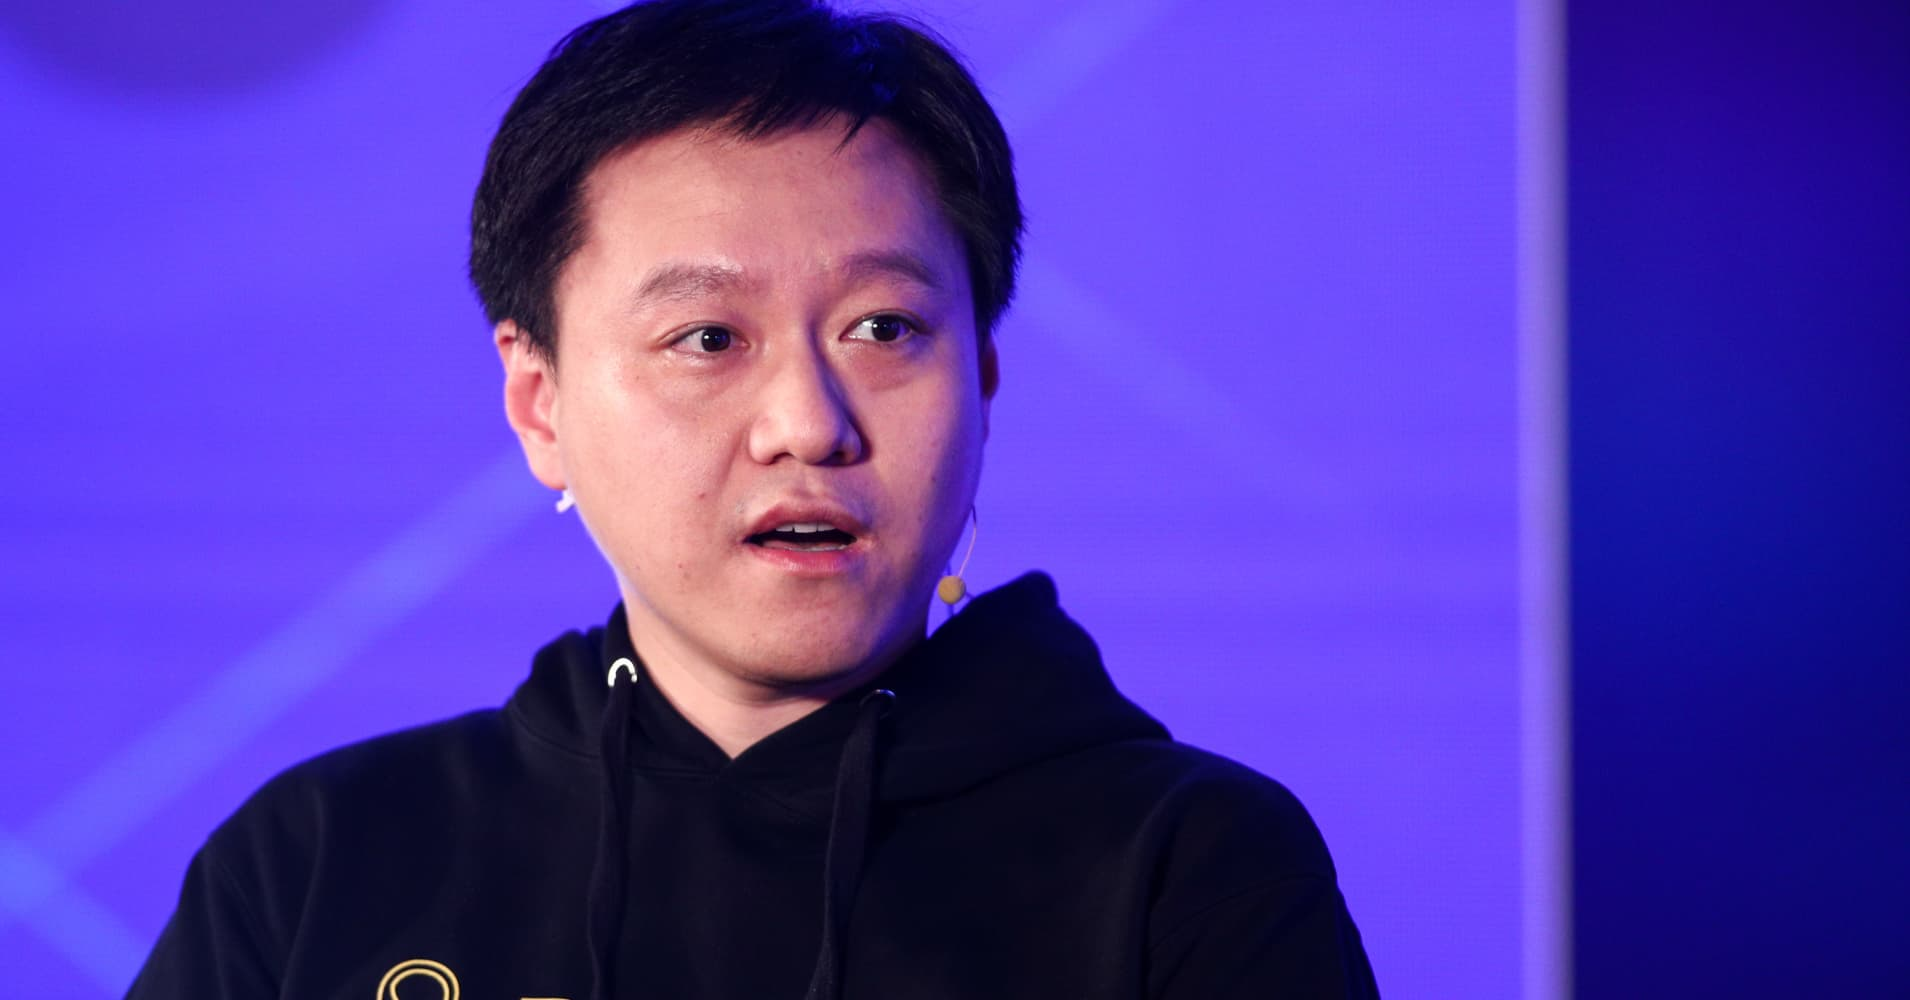 Chinese Crypto Start-up Bottos Wants to 'Break the Data Monopoly' Held by Tech Giants